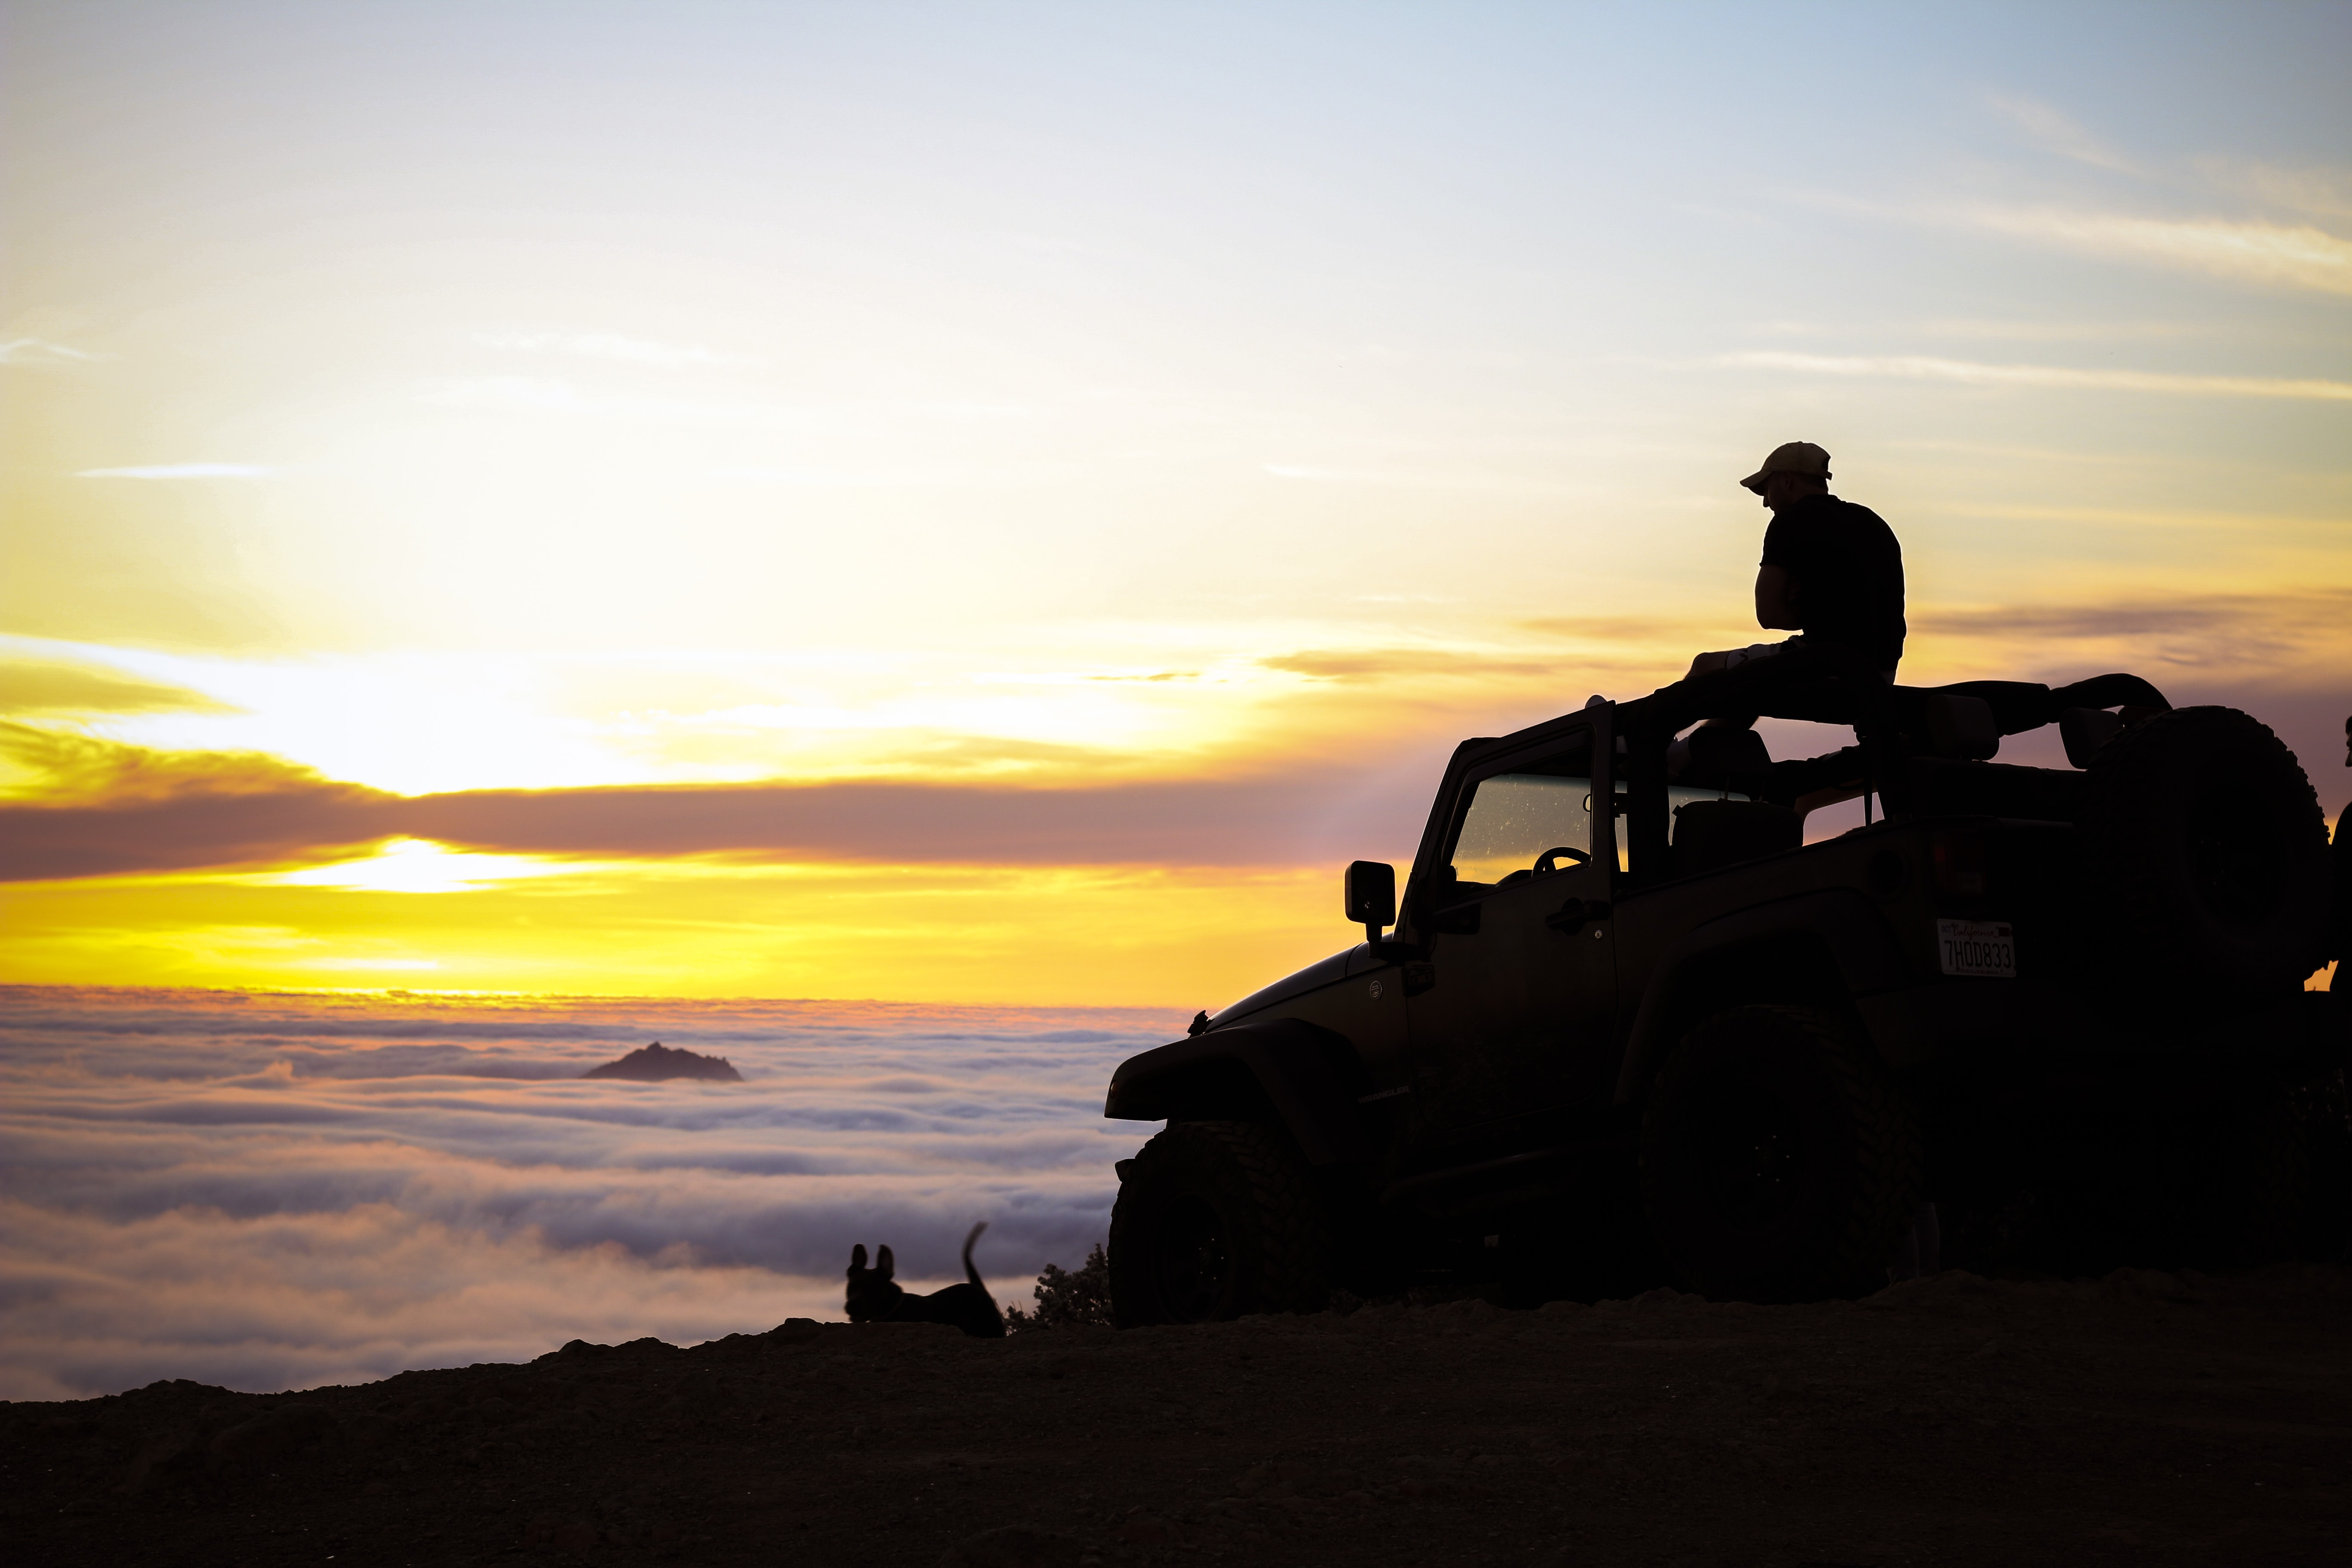 silhouette photography of person sitting on truck